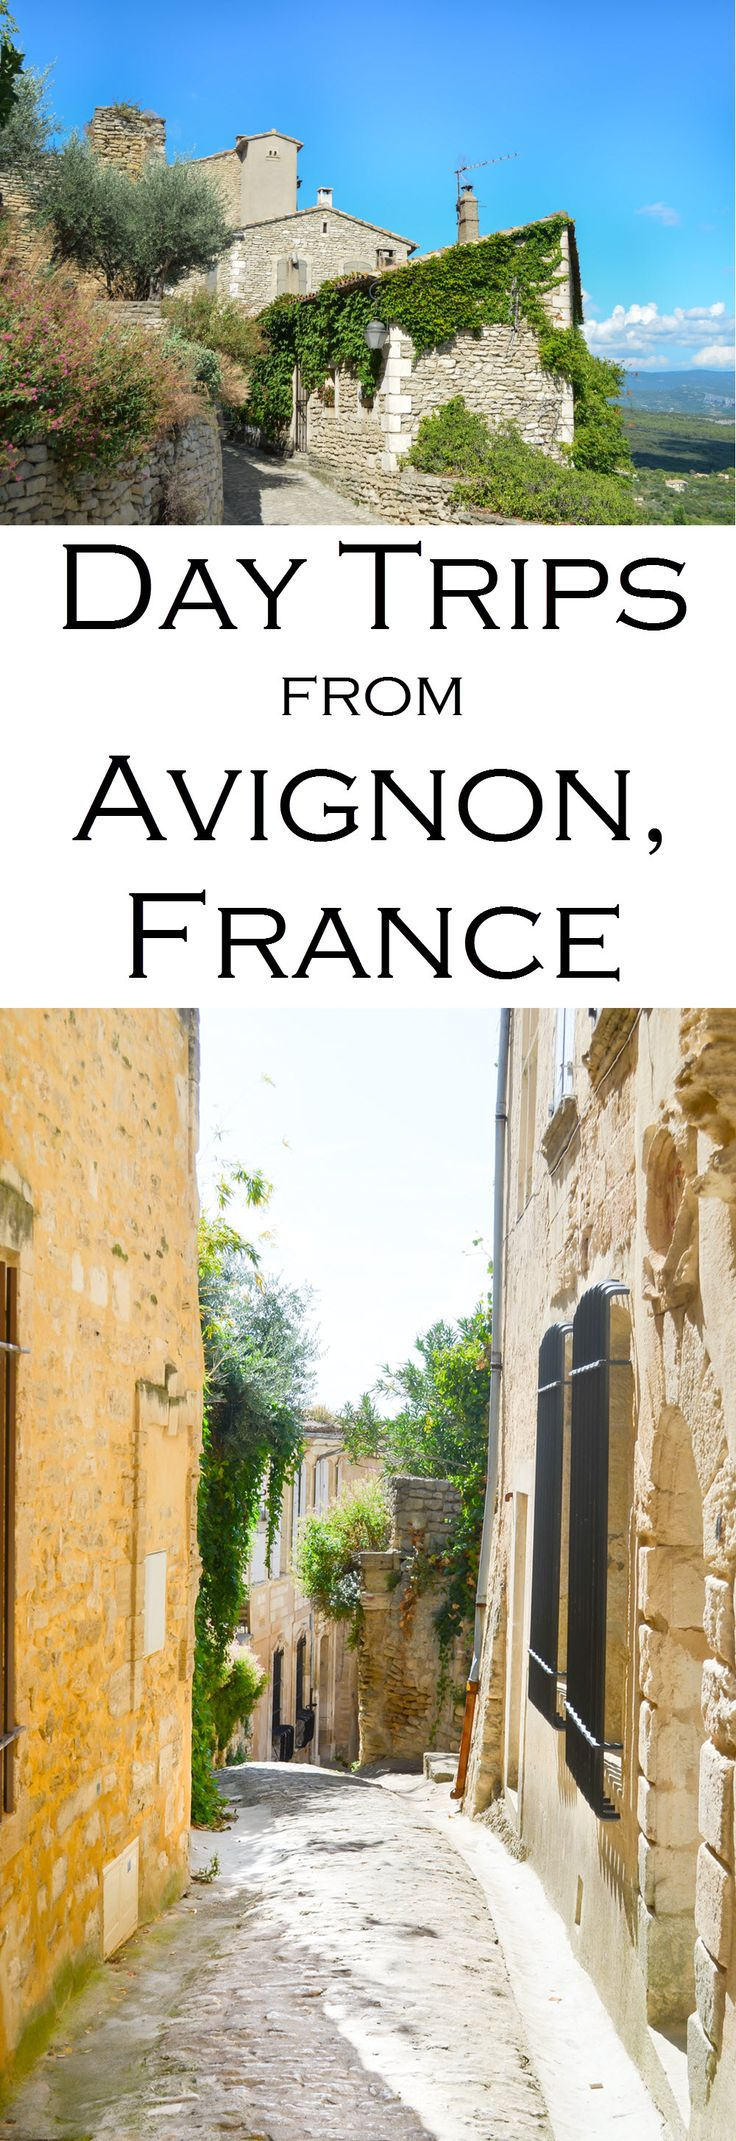 Fabulous day trips from Avignon in Provence, France. Drive the French backroads to wineries, rolling hills of lavender, hilltop towns, and the Venice of France...